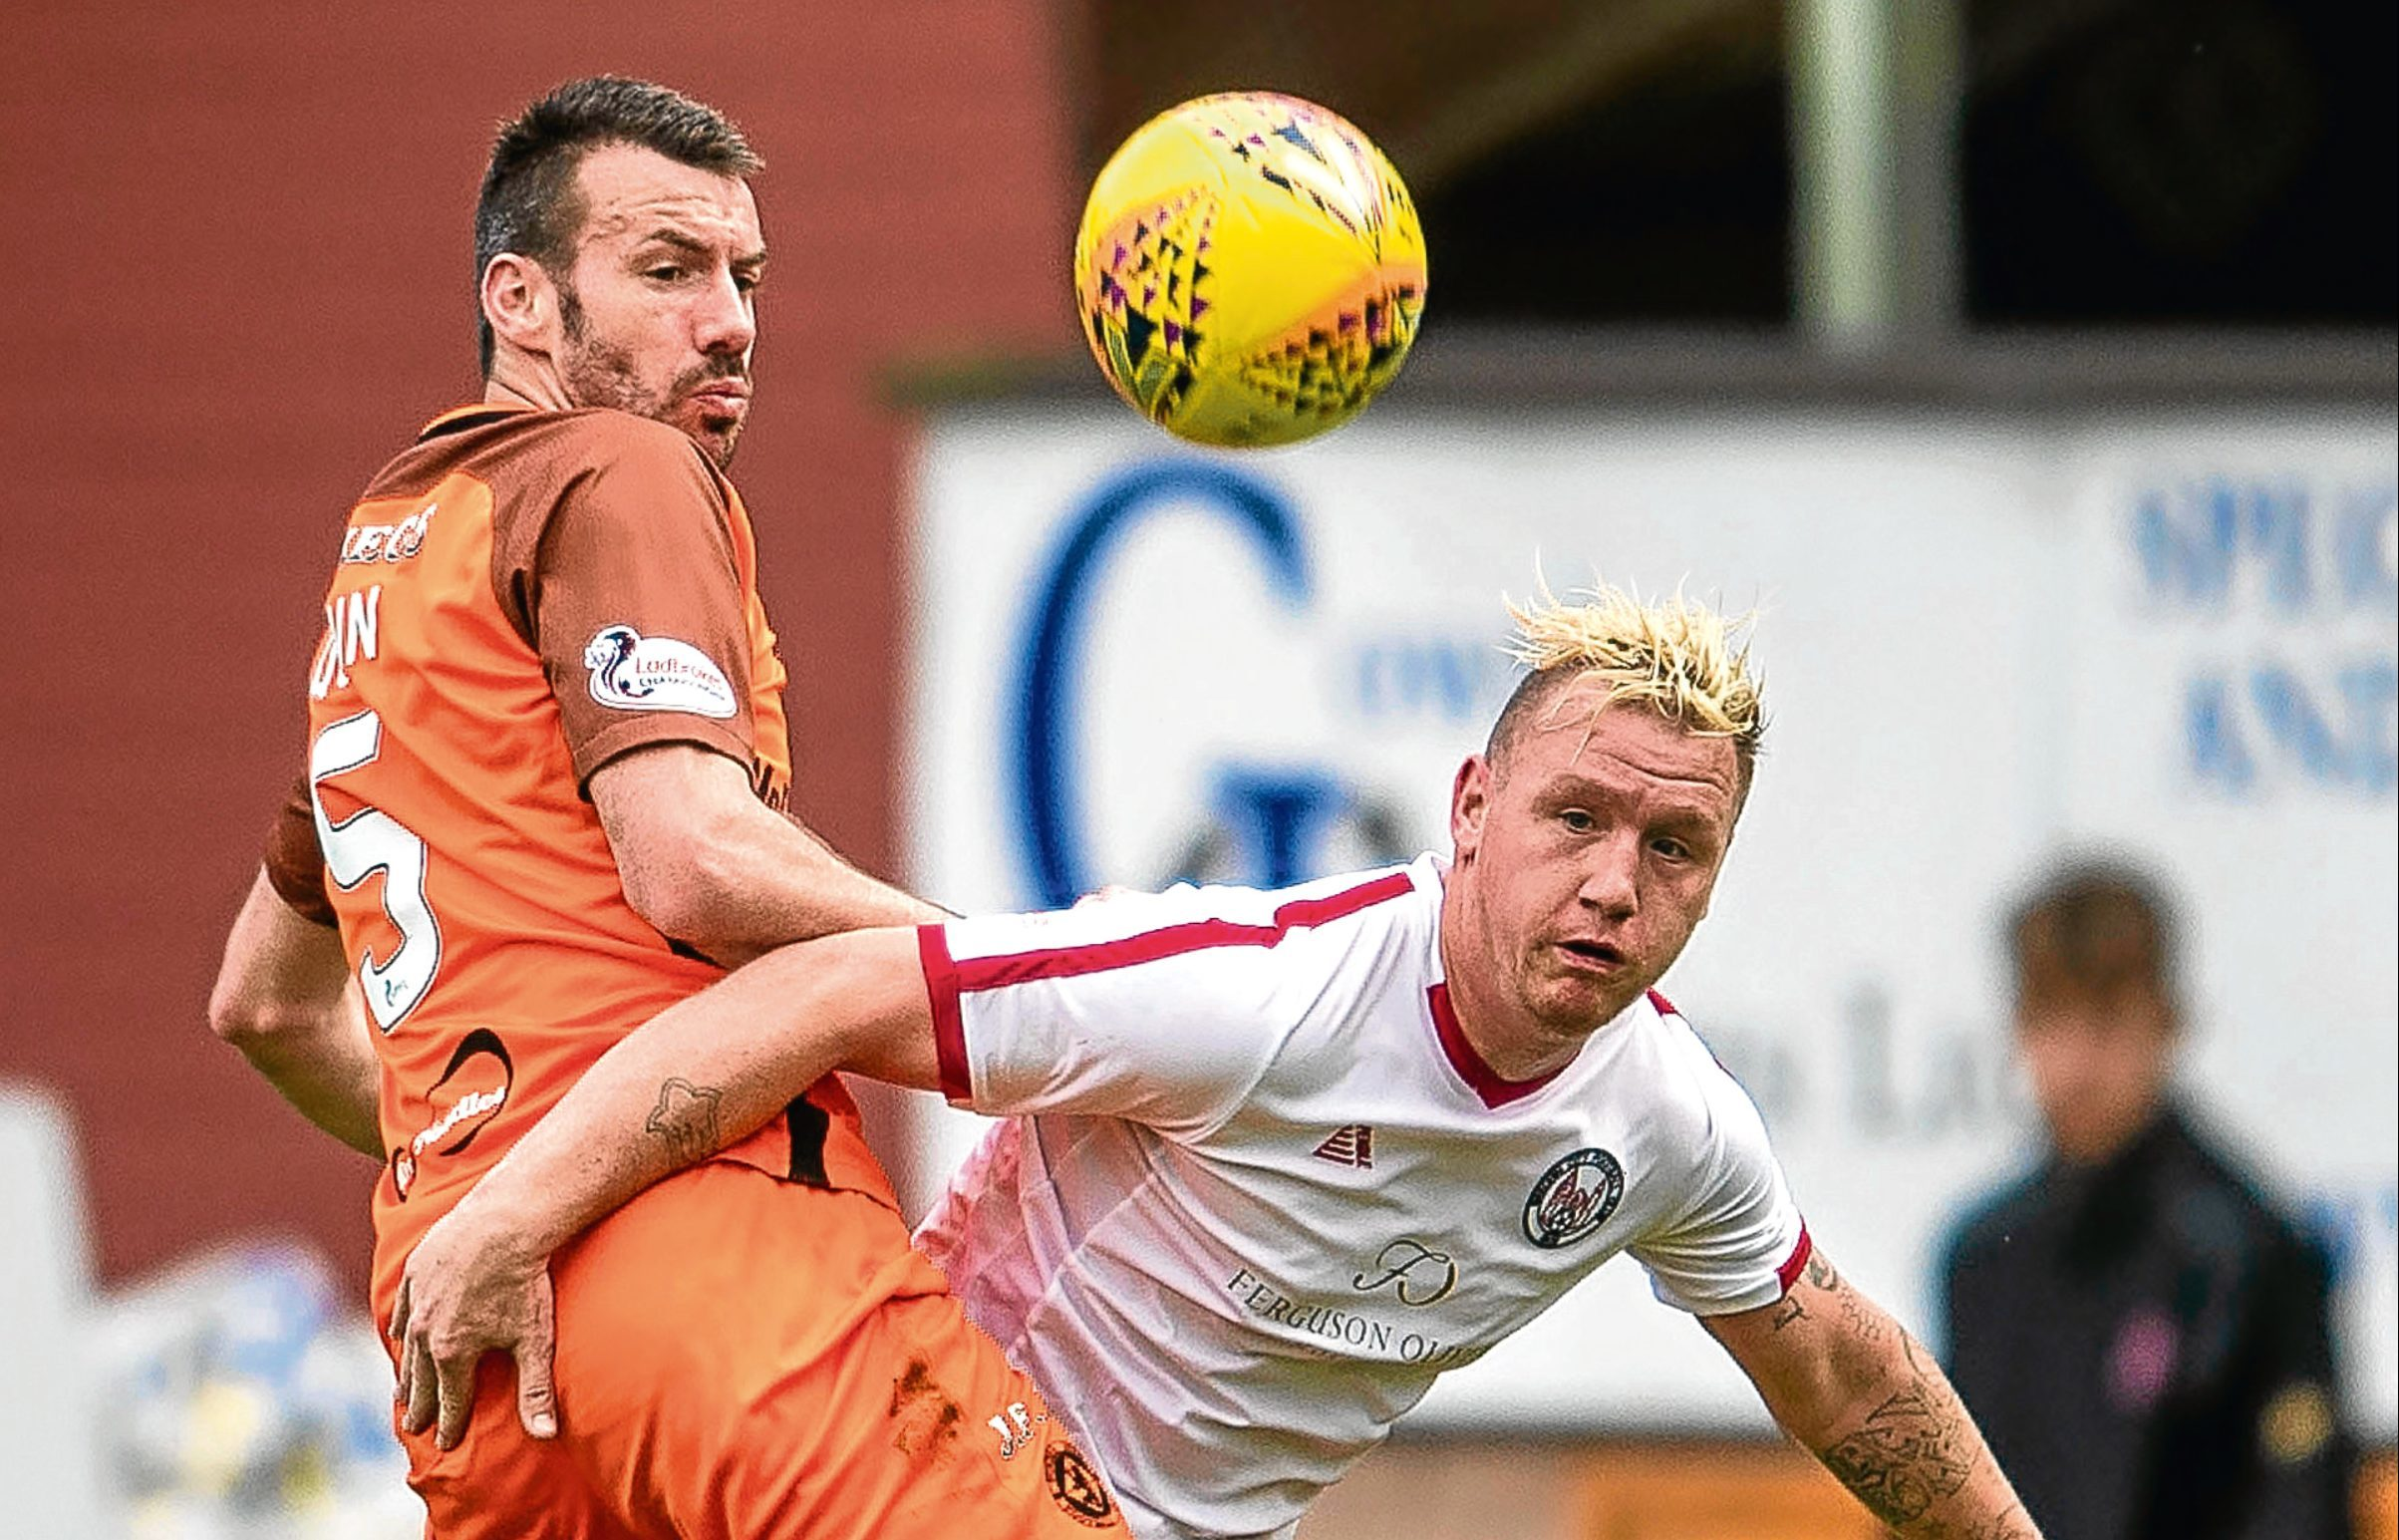 Dundee United's Paul Quinn is back training after a recent health scare sidelined the defender.